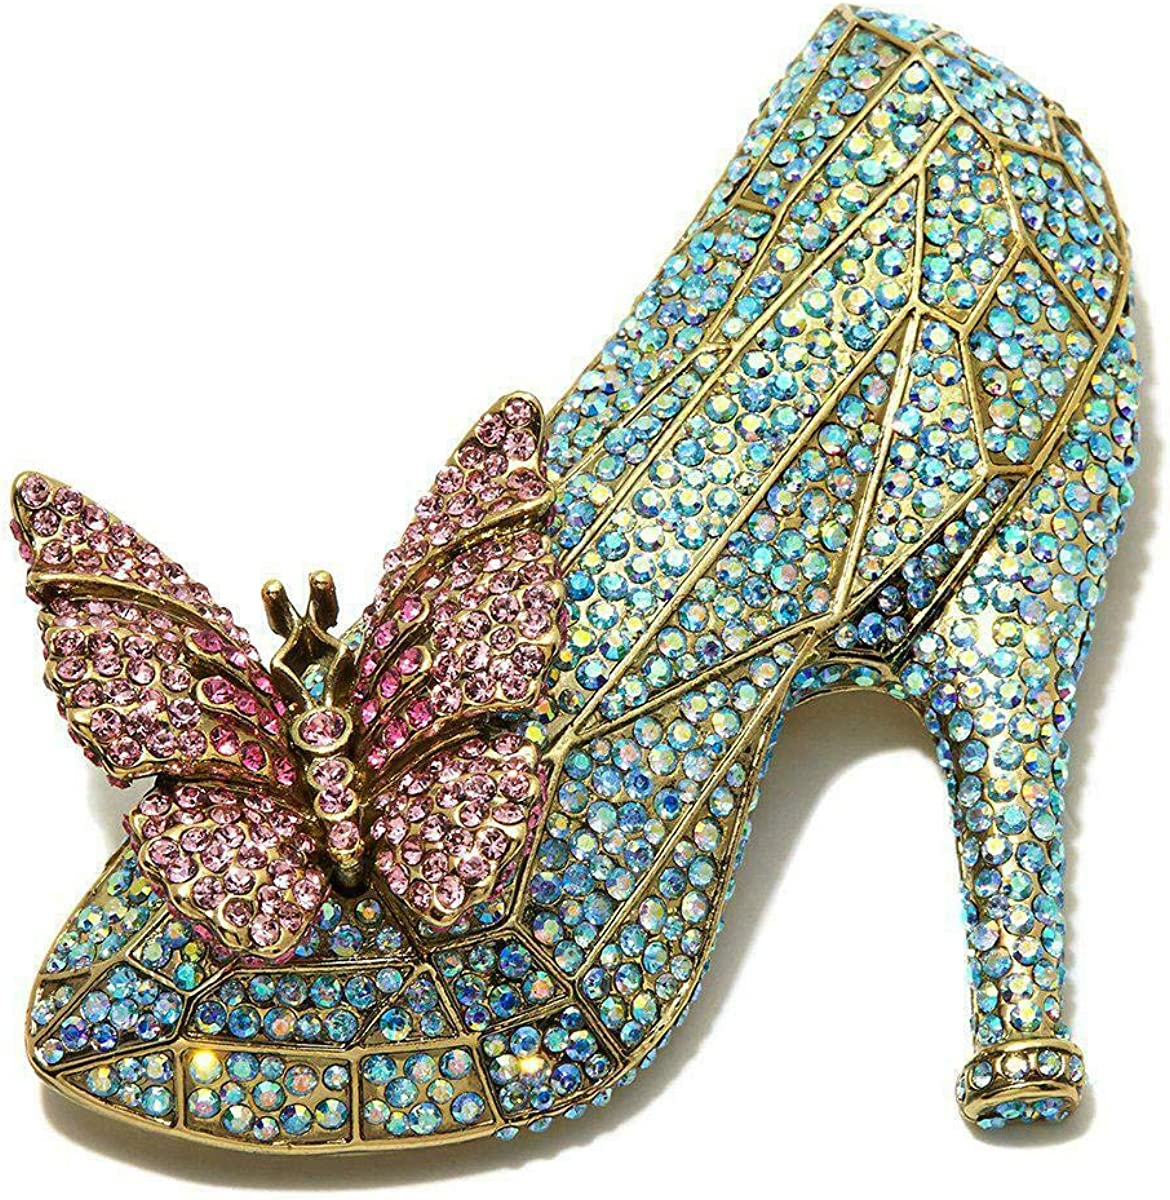 Heidi Daus Signed IF The Shoe FITS RET HD GR Online PIN New product Now Discount is also underway $190